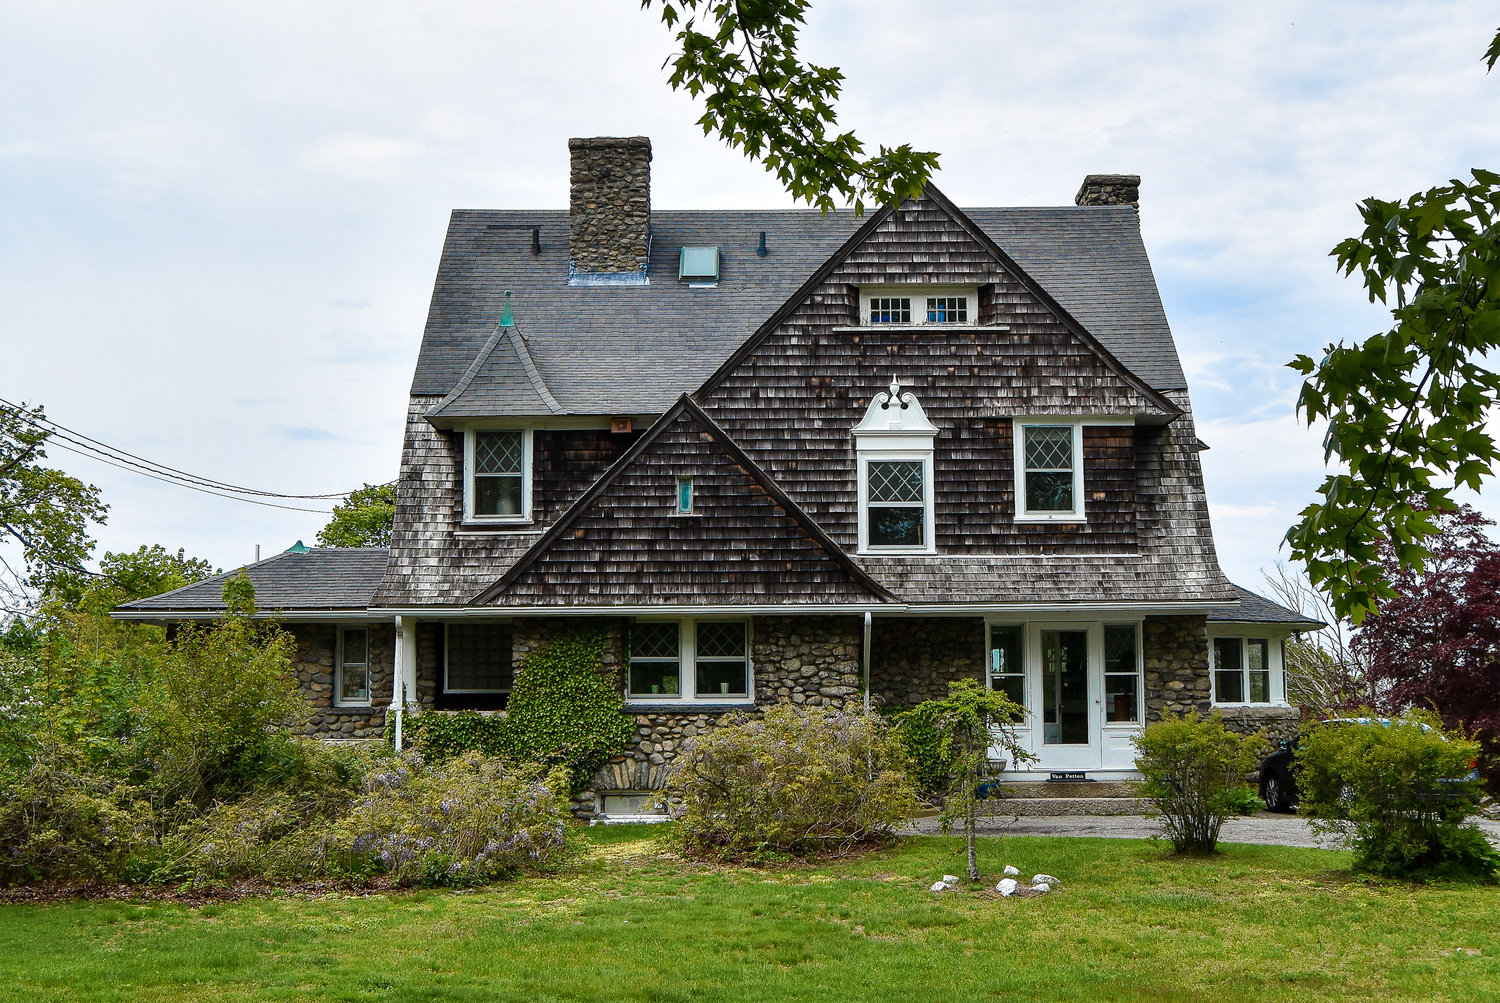 Shingle Style, Newport: Although they can be found throughout the US, shingle style homes feel particularly rooted in New England to me. There's something about a weathered cedar shake with Nantucket blue trim that's an essential part of our vernacular architecture here.